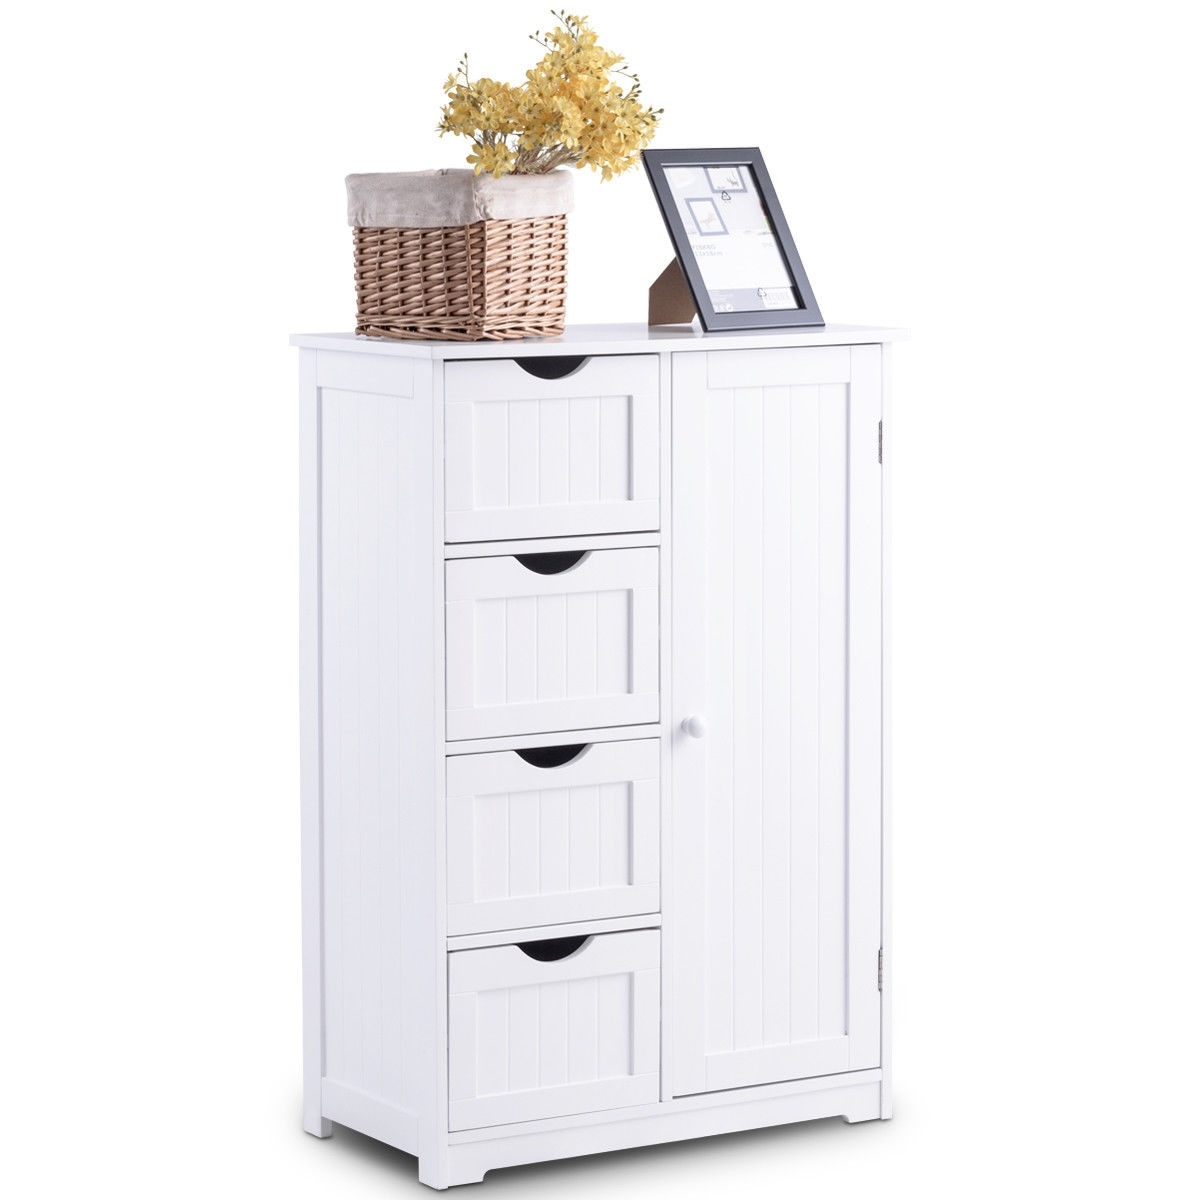 Shop Costway Wooden 4 Drawer Bathroom Cabinet Storage Cupboard 2 Shelves Free Standing White - Free Shipping Today - Overstock.com - 19817490